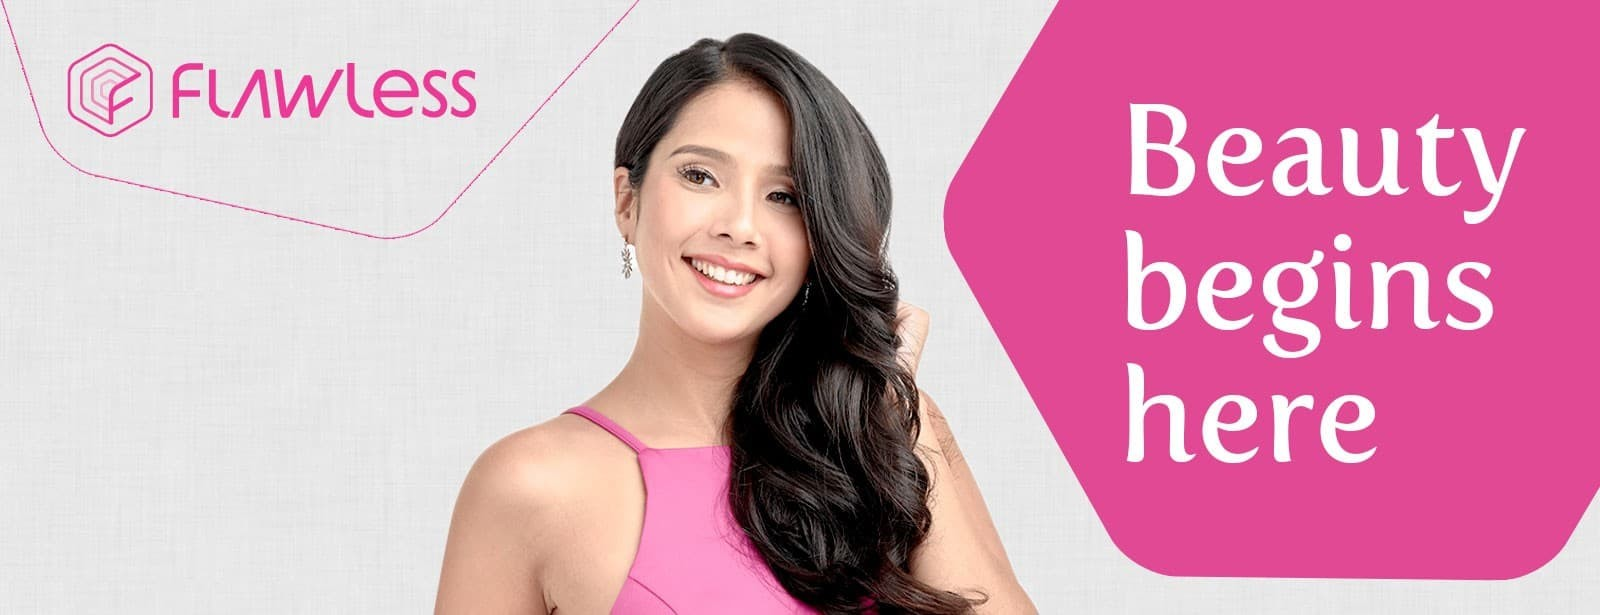 Maxene Magalona Endorser Celebrity Flawless Influencer